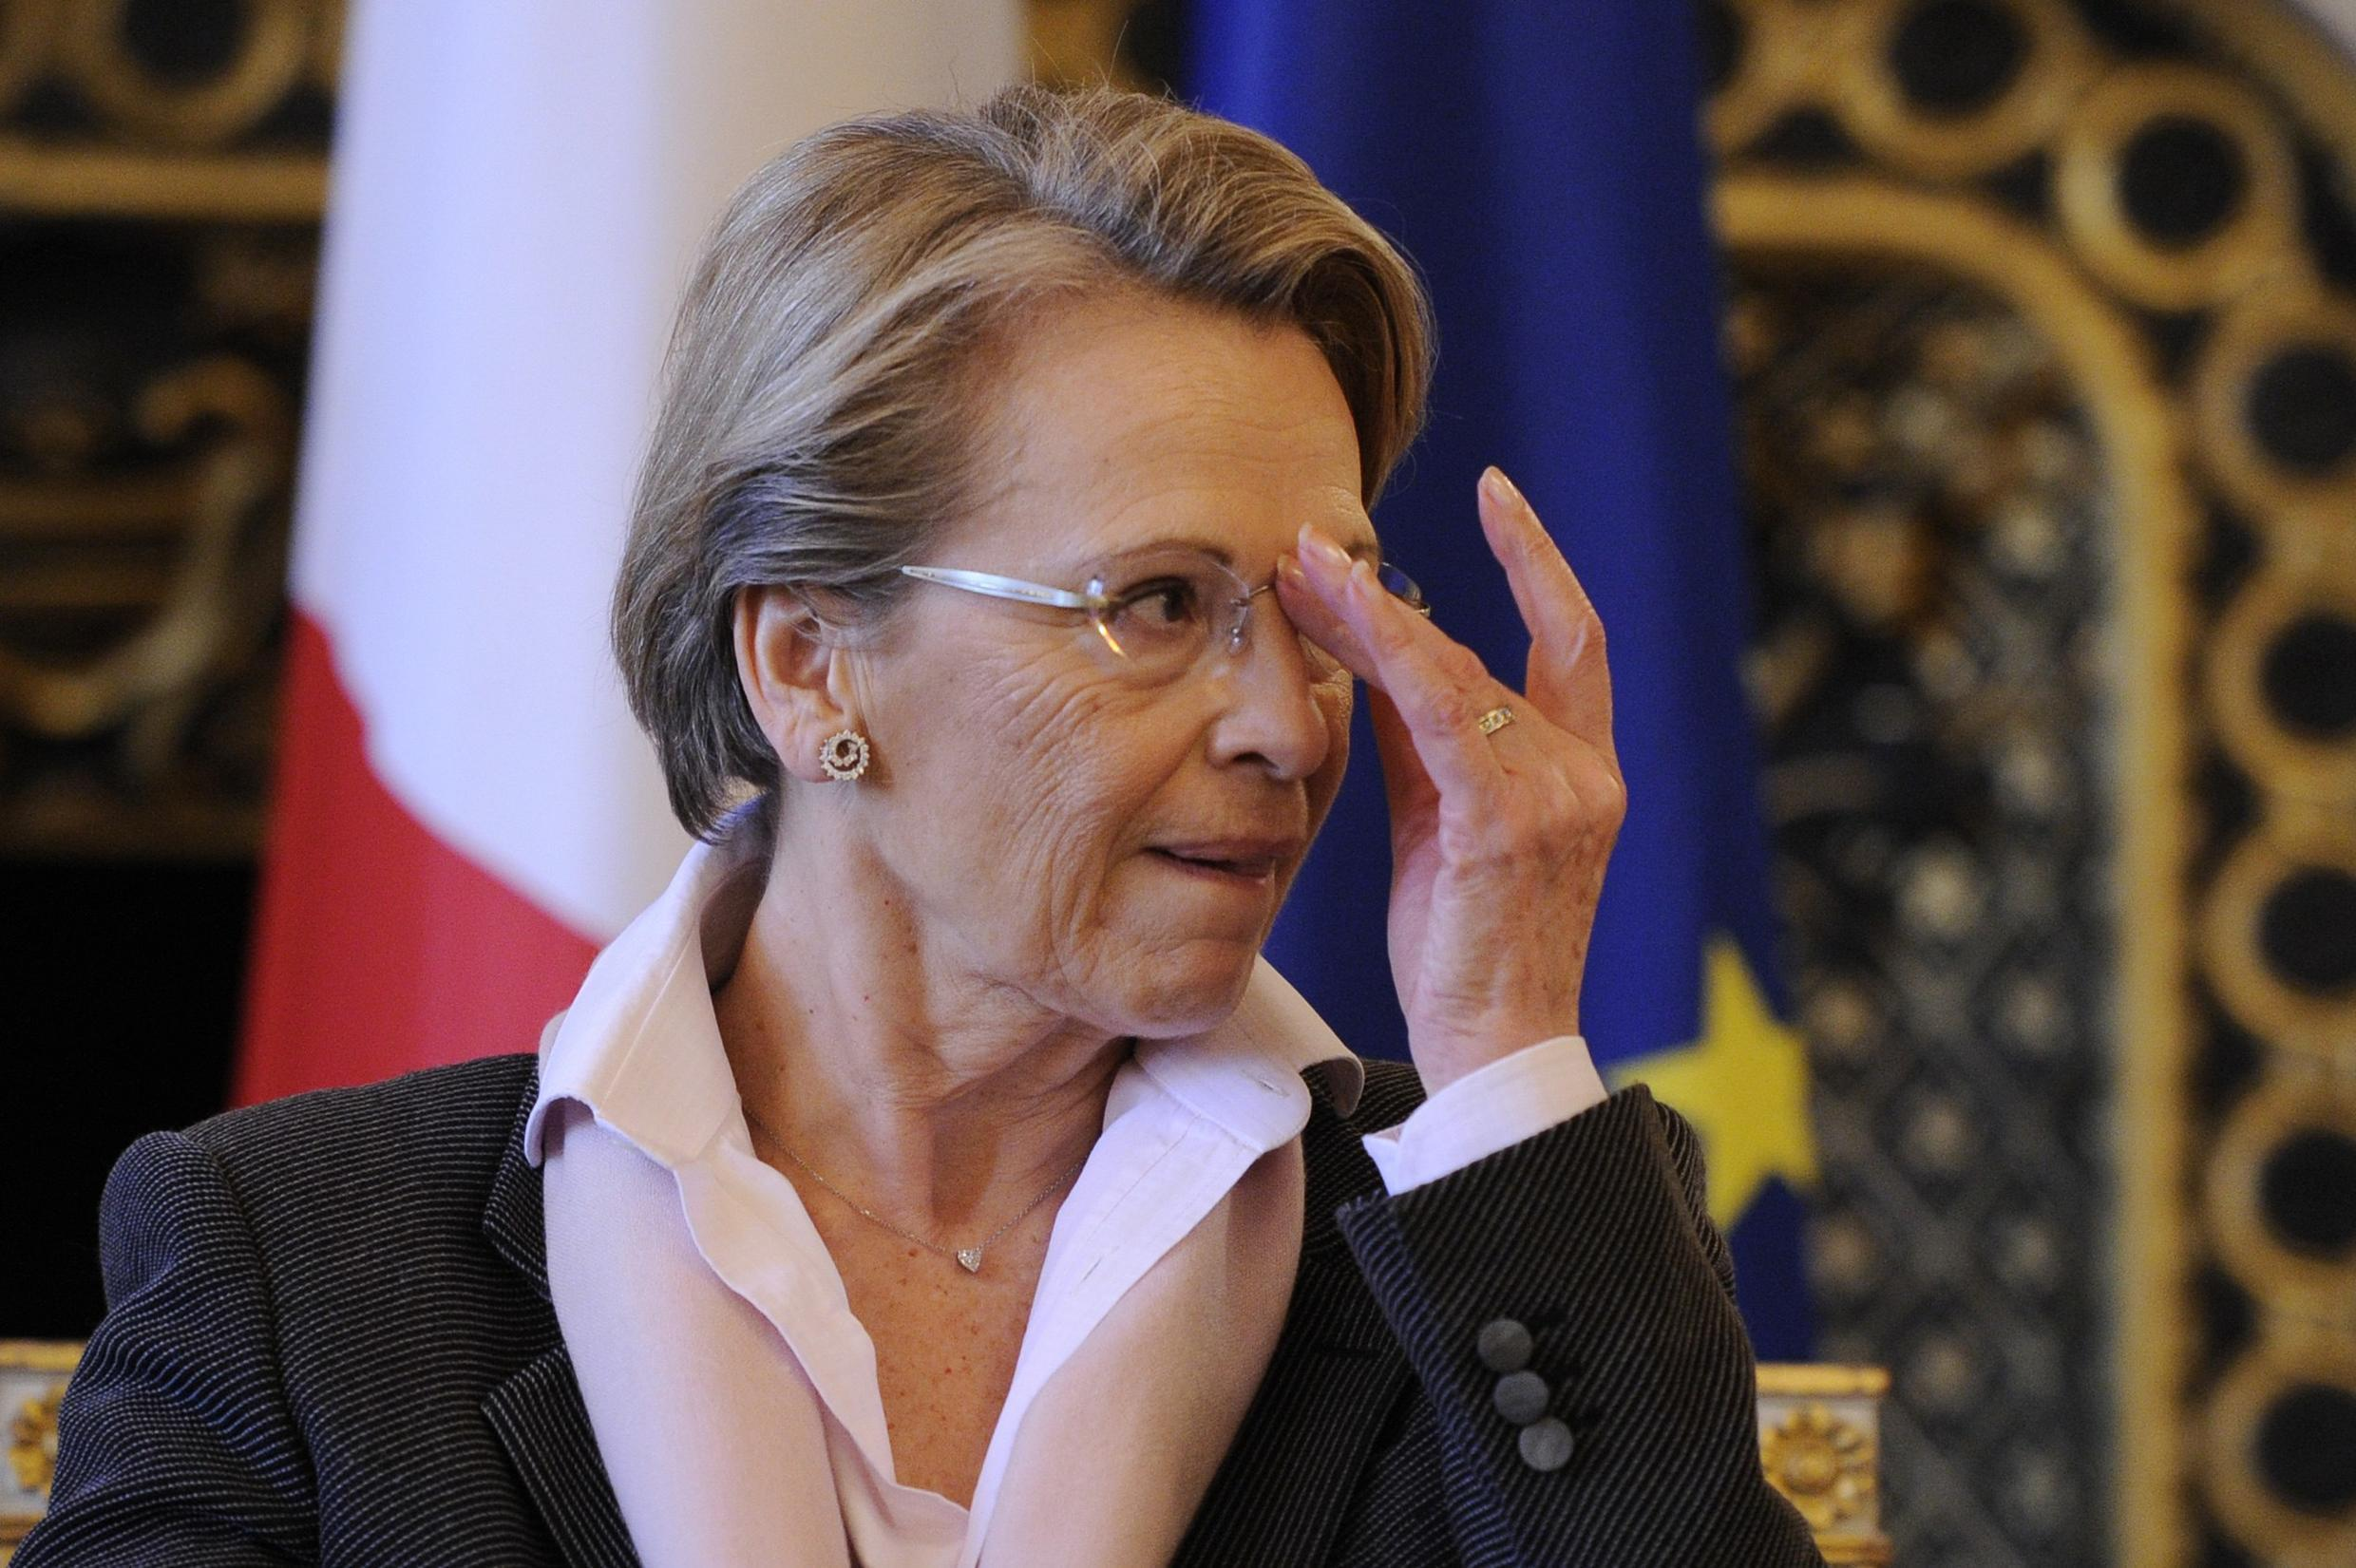 France's Foreign Minister Michele Alliot-Marie